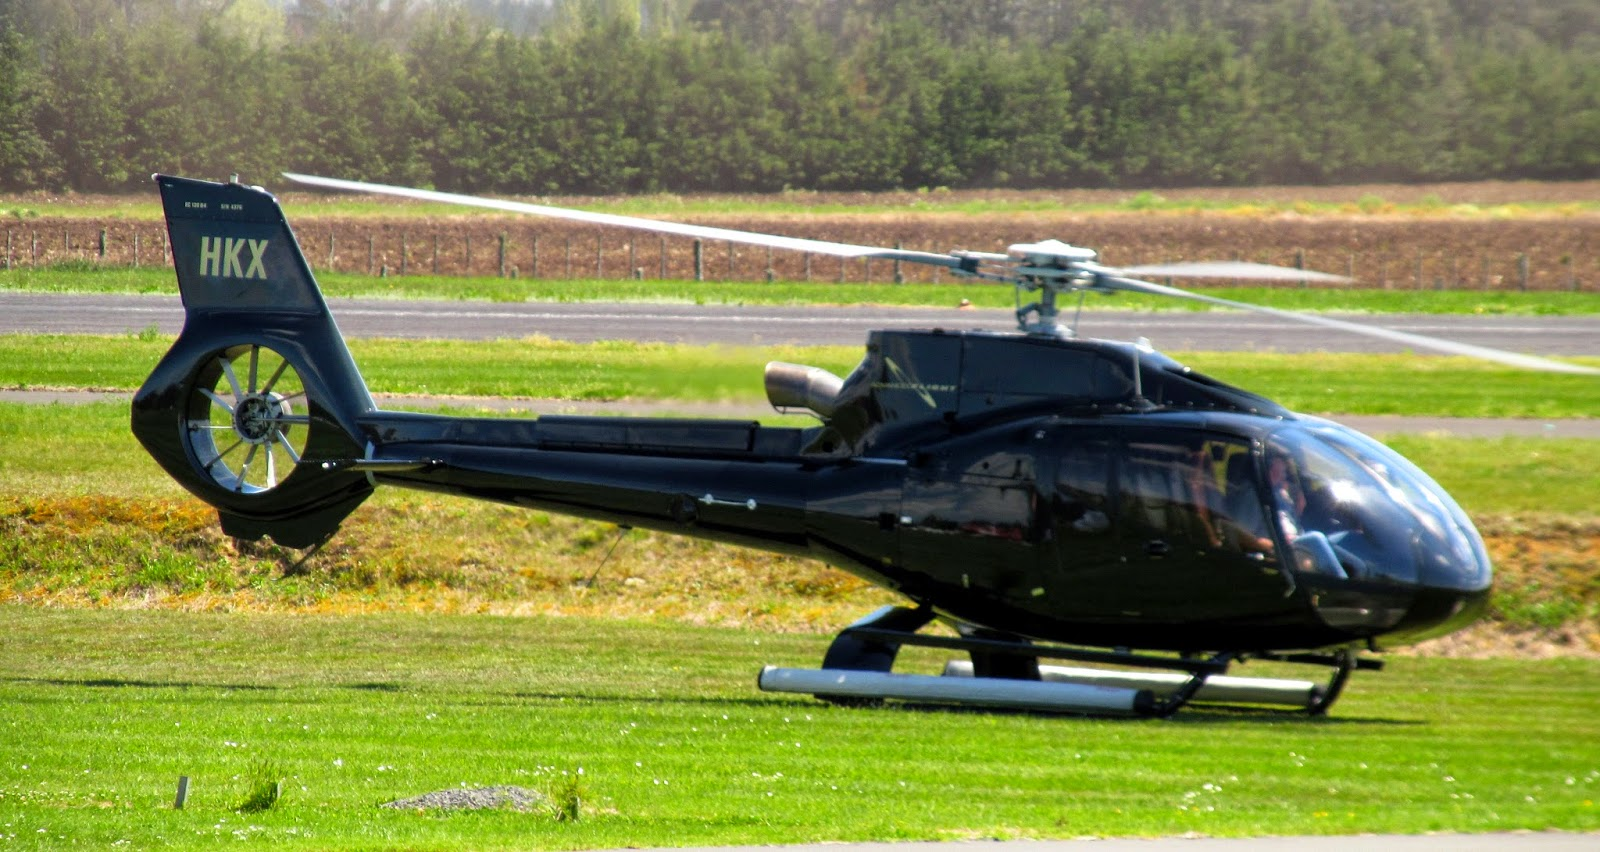 advanced heli flight ltd with Some From Ardmore Yesterday 16 10 2014 on Rocketroute Air Bp At Nbaa Bace 2016 together with Nz royal new zealand air force as well A109 aw109sp additionally Explorer gehms also R44 robinson.